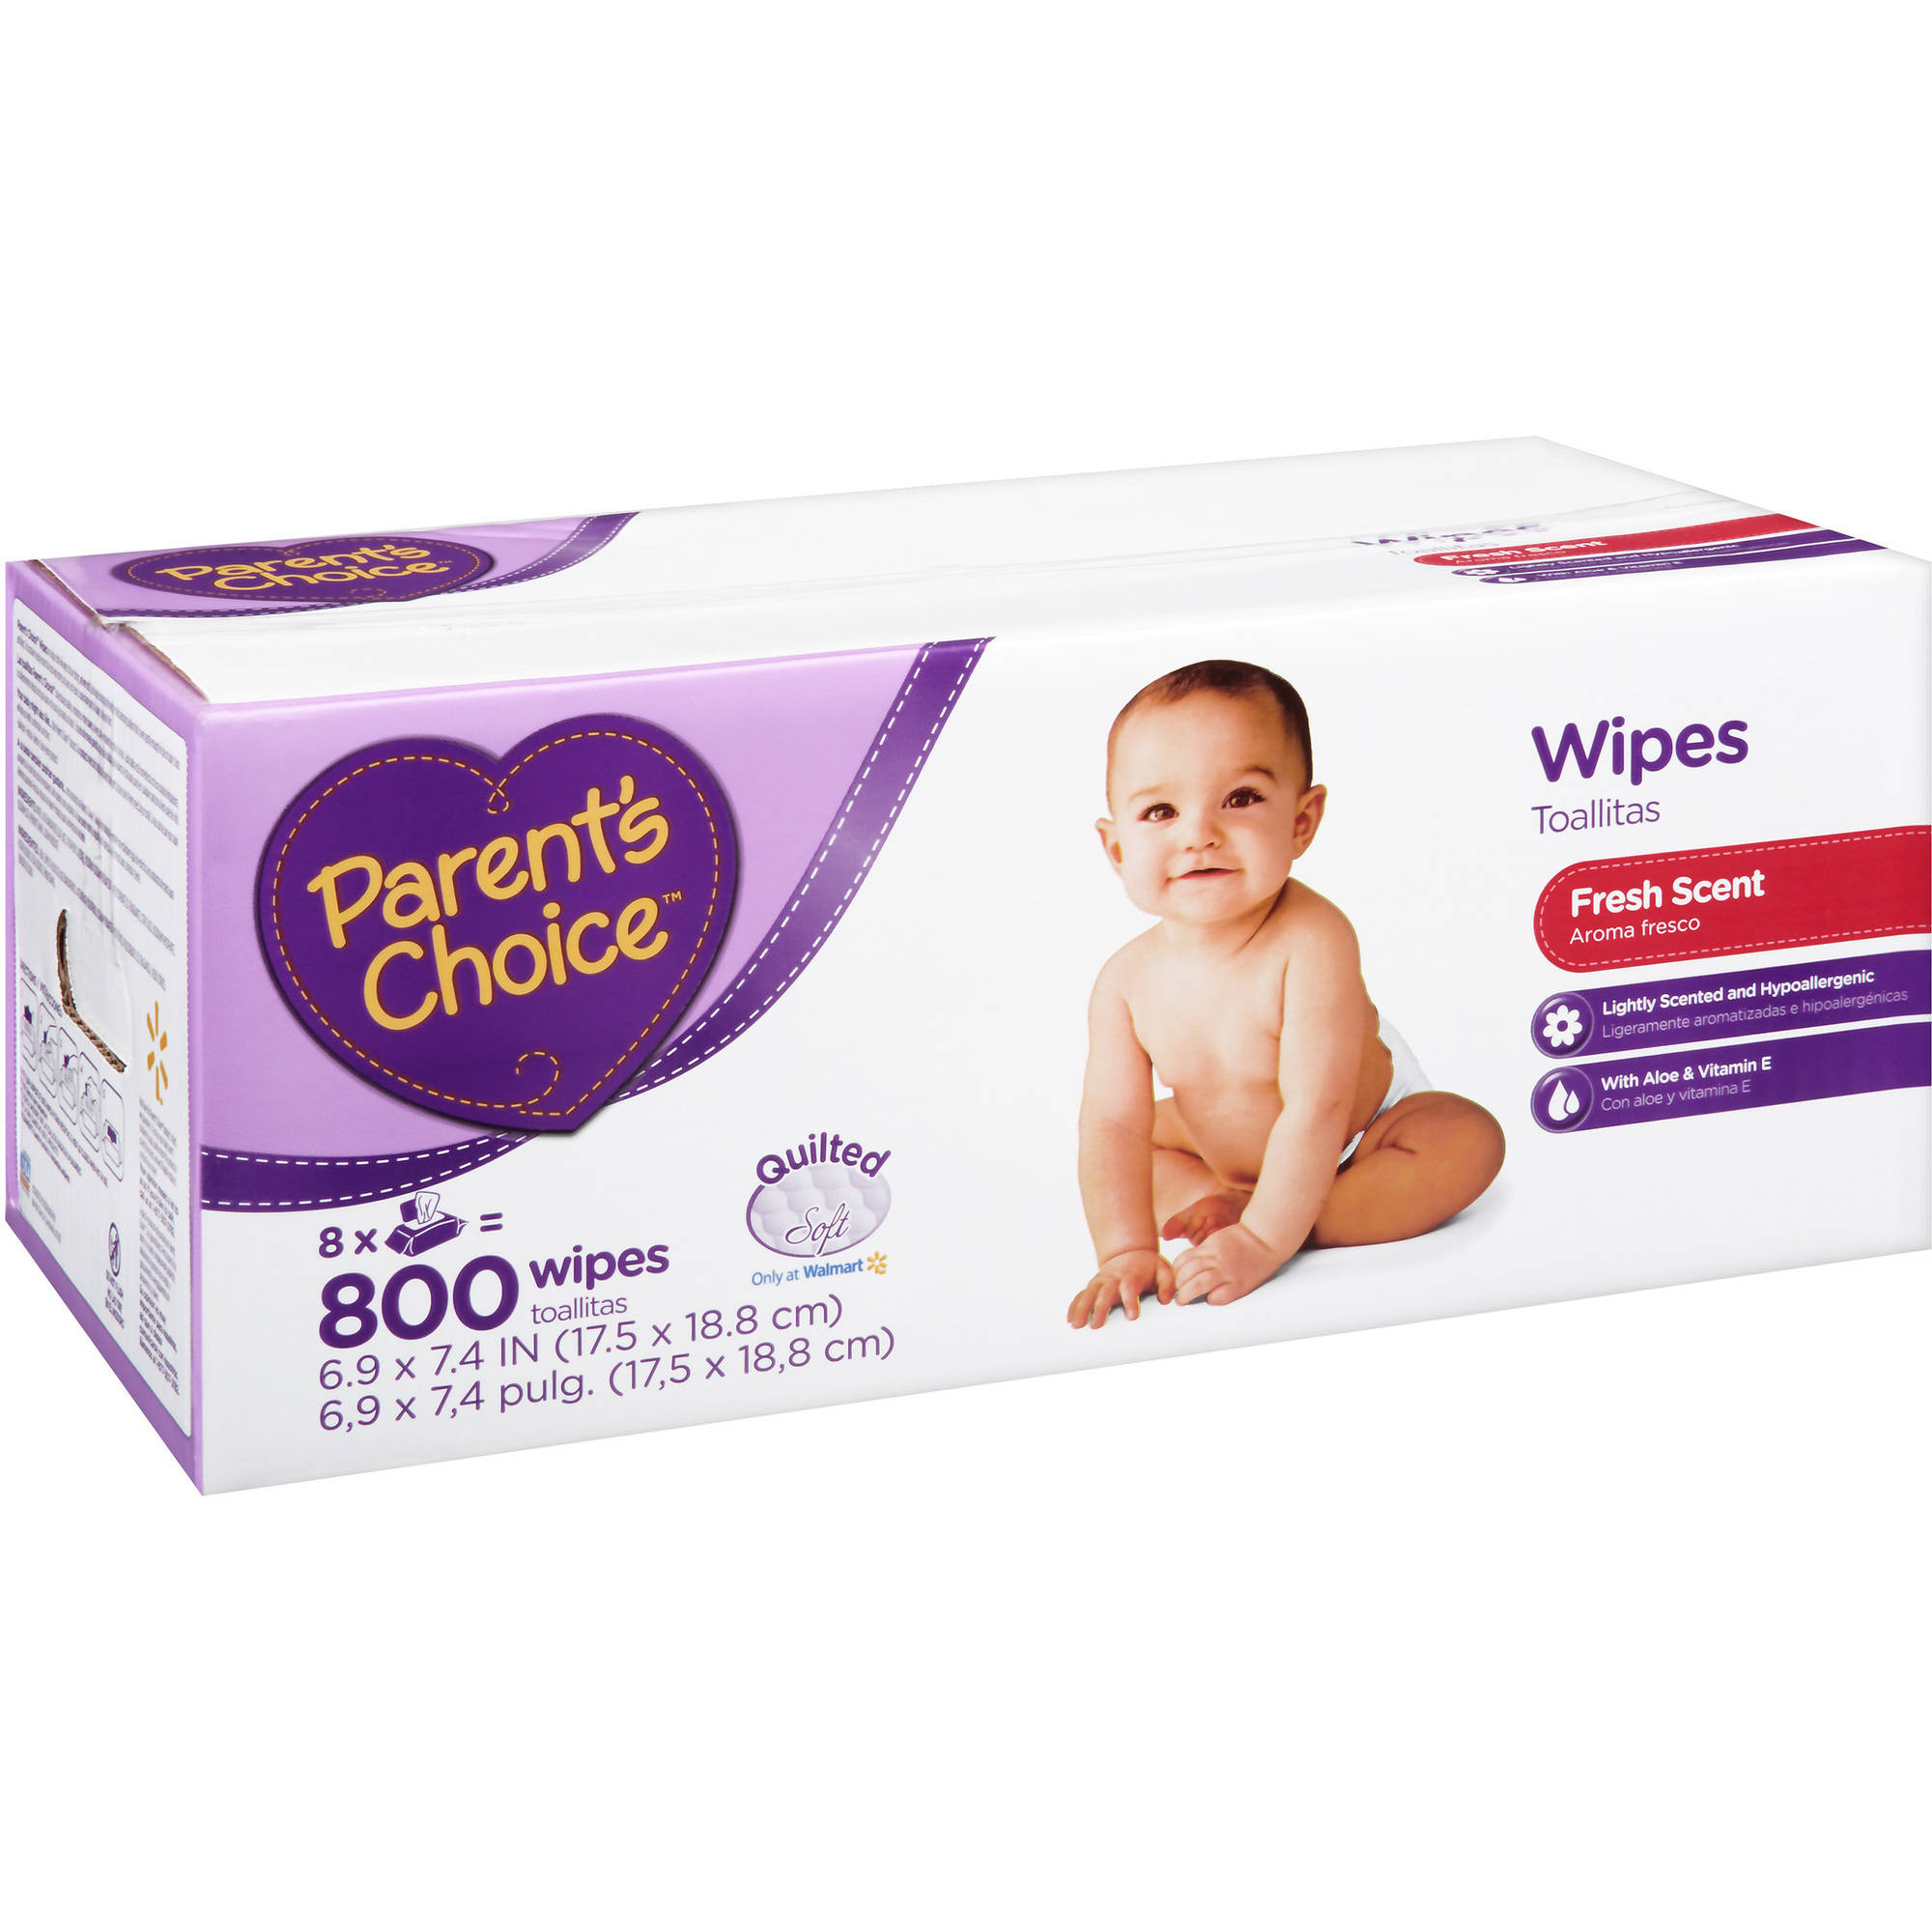 Parent's Choice Scented Baby Wipes, 800 sheets